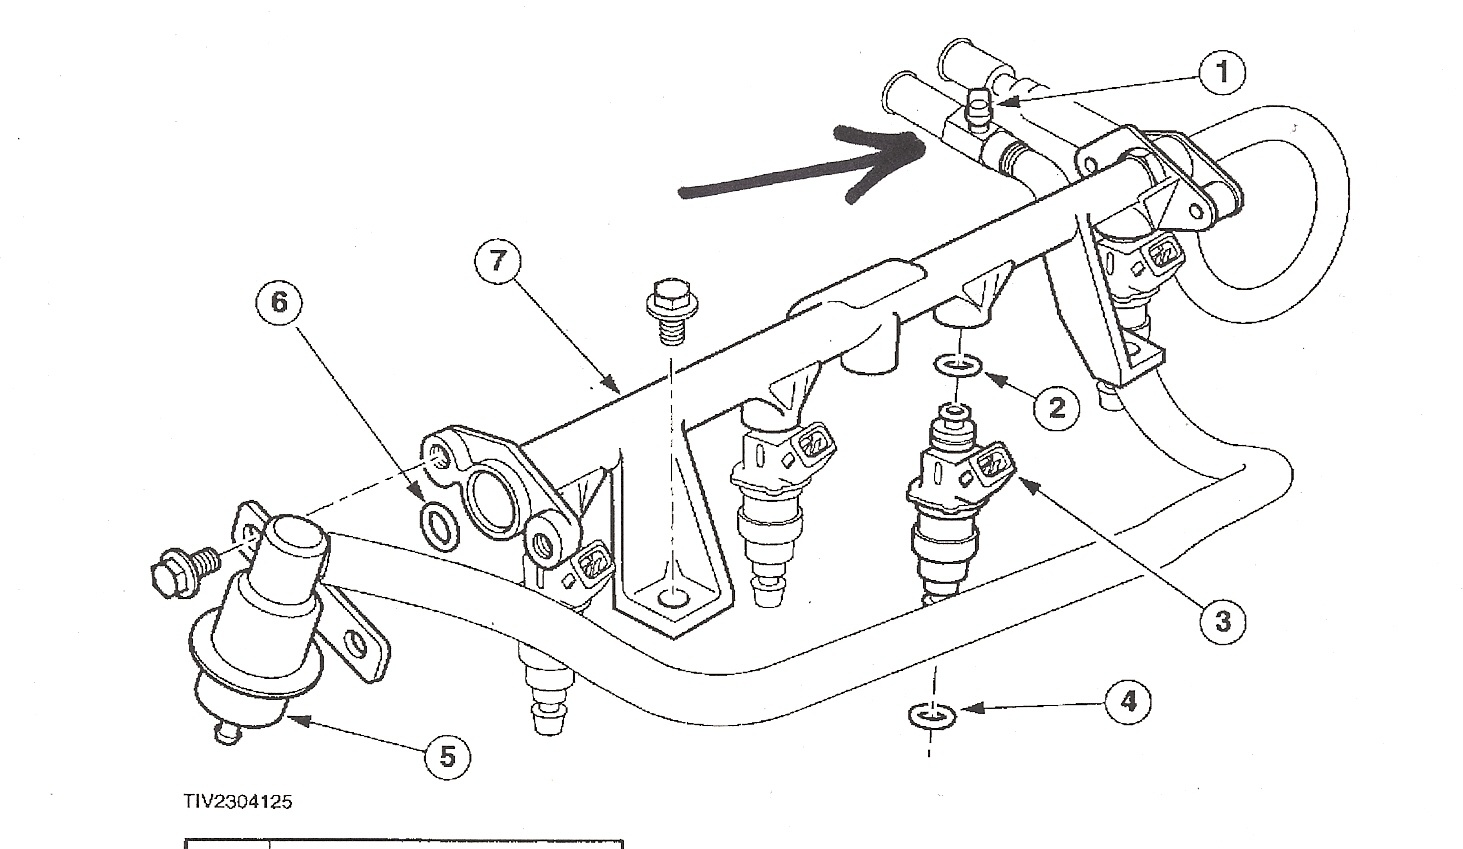 WRG-2199] 1999 Ford F 250 Fuel Pump Wiring Diagram